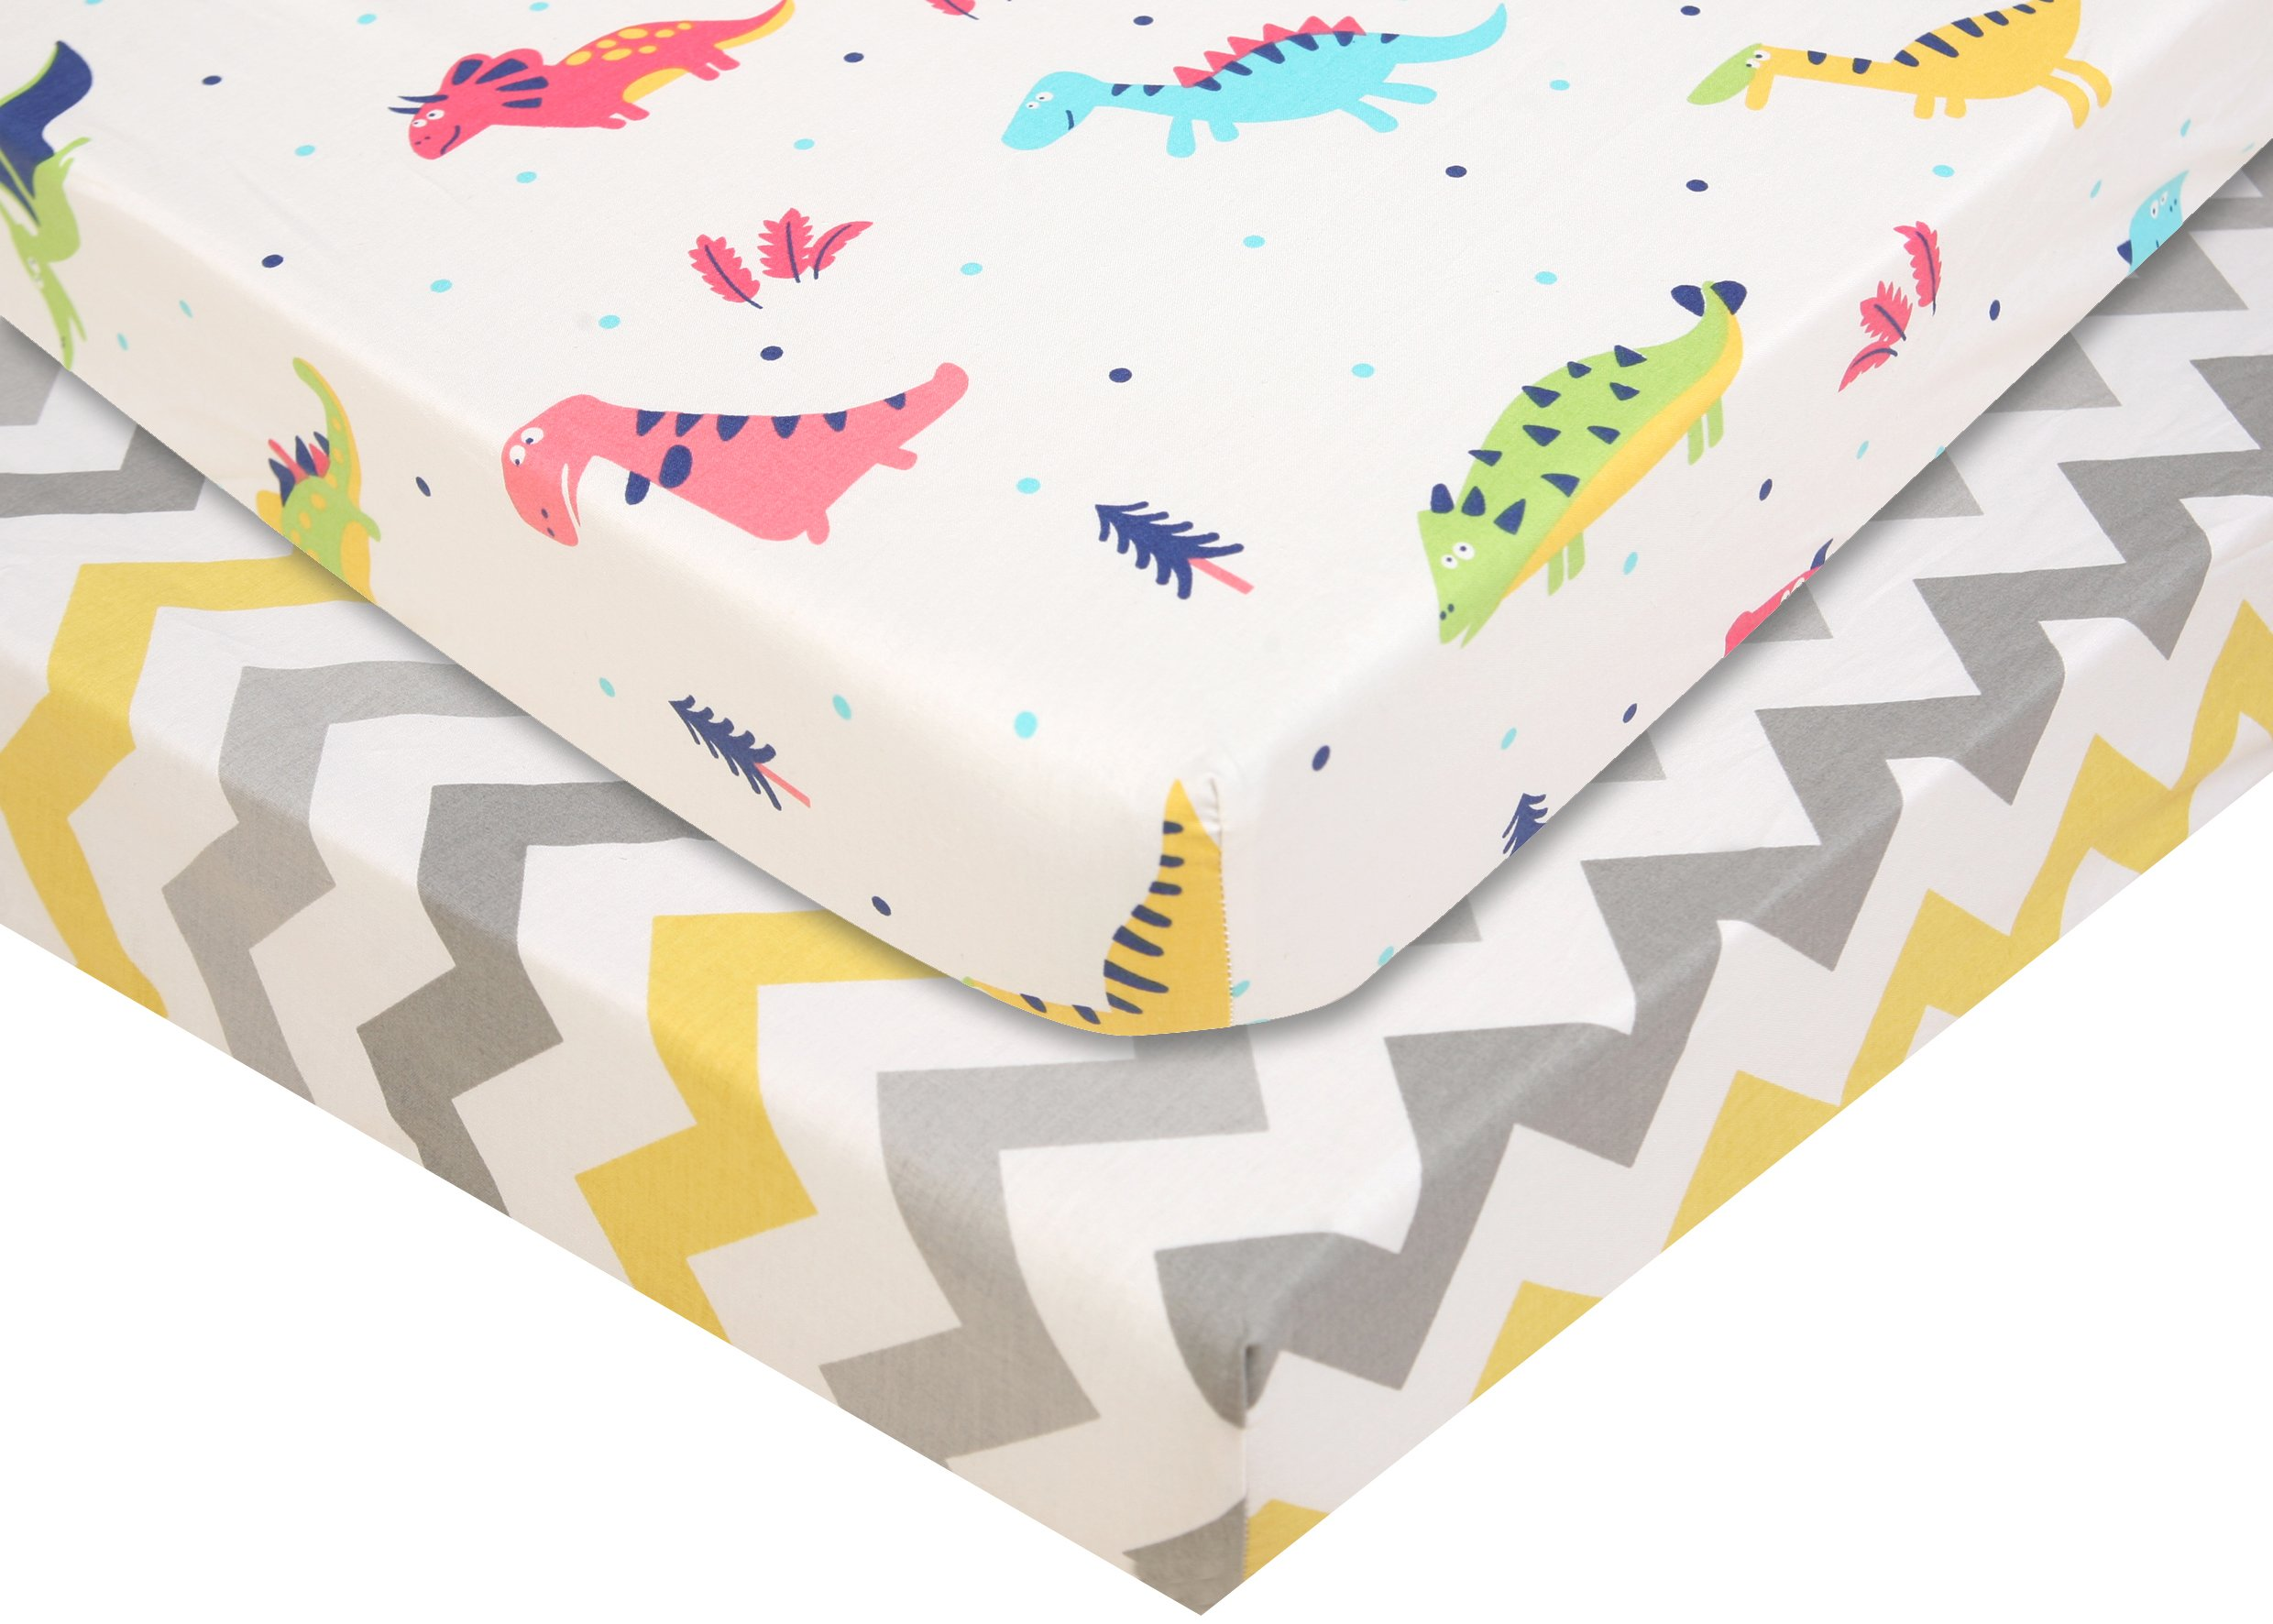 Pack N Play Playard Sheet - 2 Pack 100% Premium Cotton, Fits Perfectly Graco Pack N Play, Dream On Me Playard Mattress 3'' Or Any Standard Mini Crib Mattress, Happy Dinos and Chevron